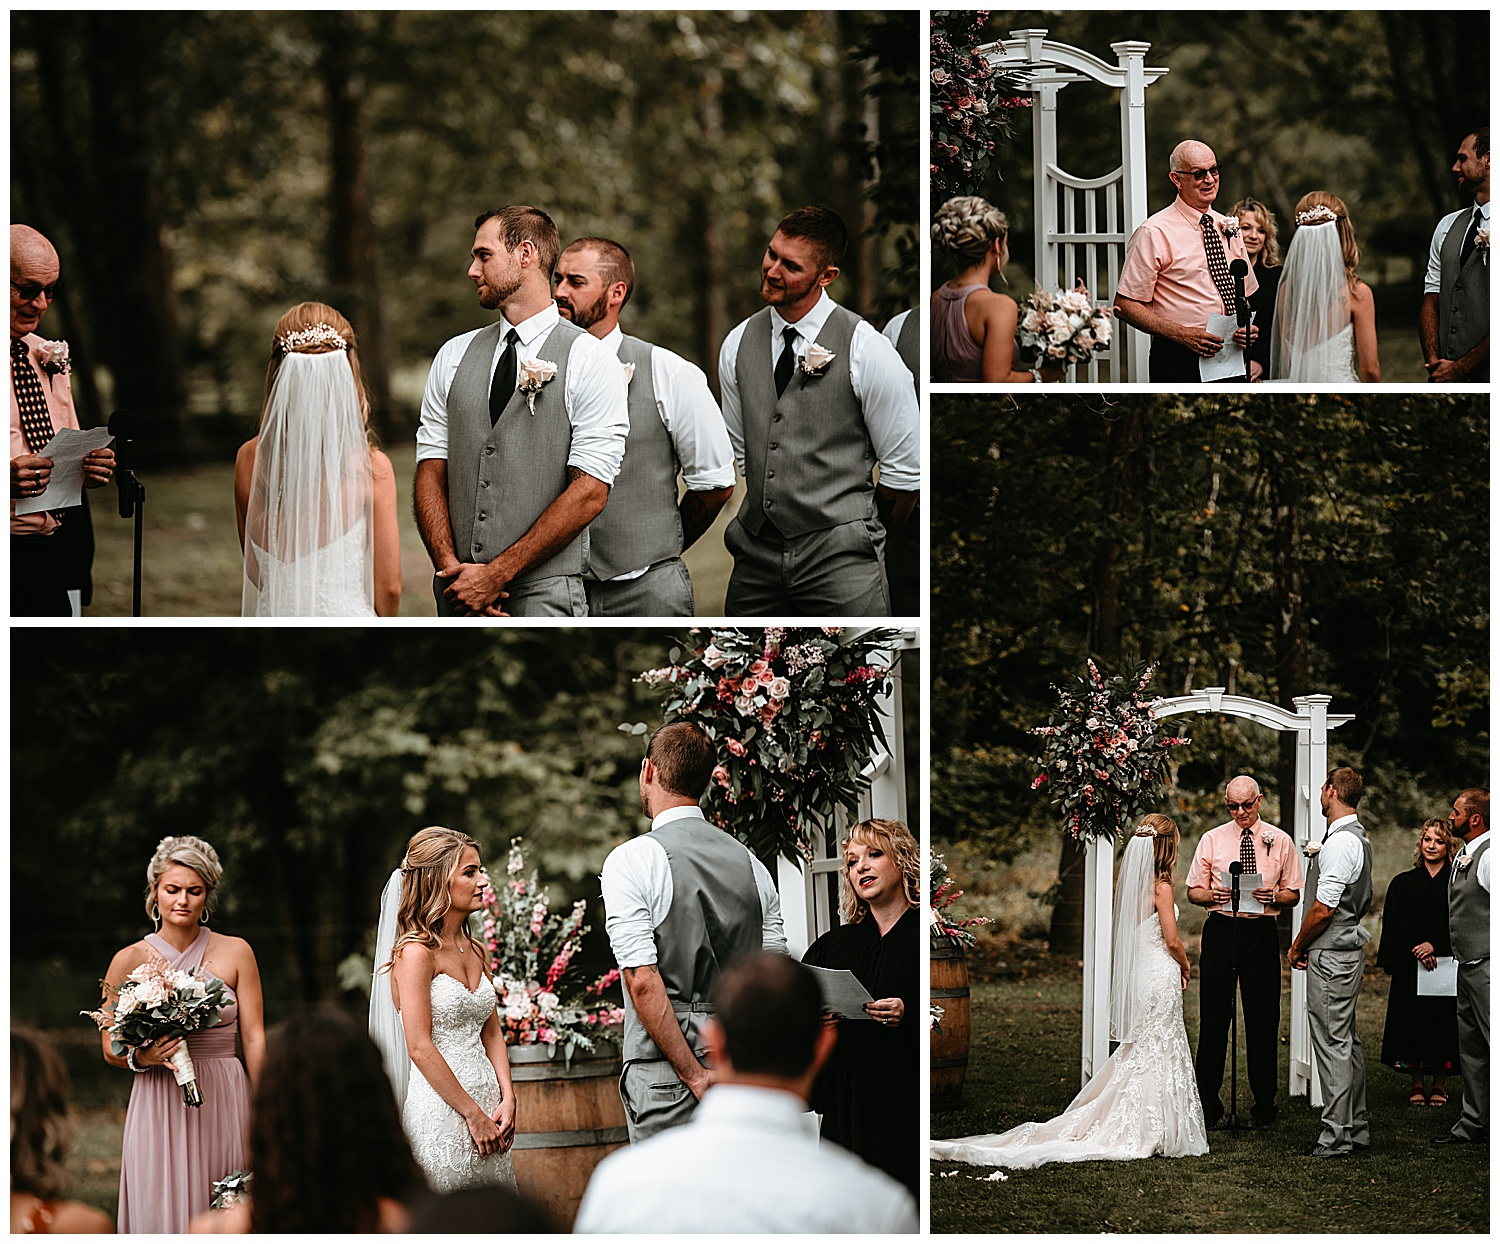 NEPA-Bloomgsburg-Wedding-Photographer-at-The-Barn-in-State-College-PA_0012.jpg